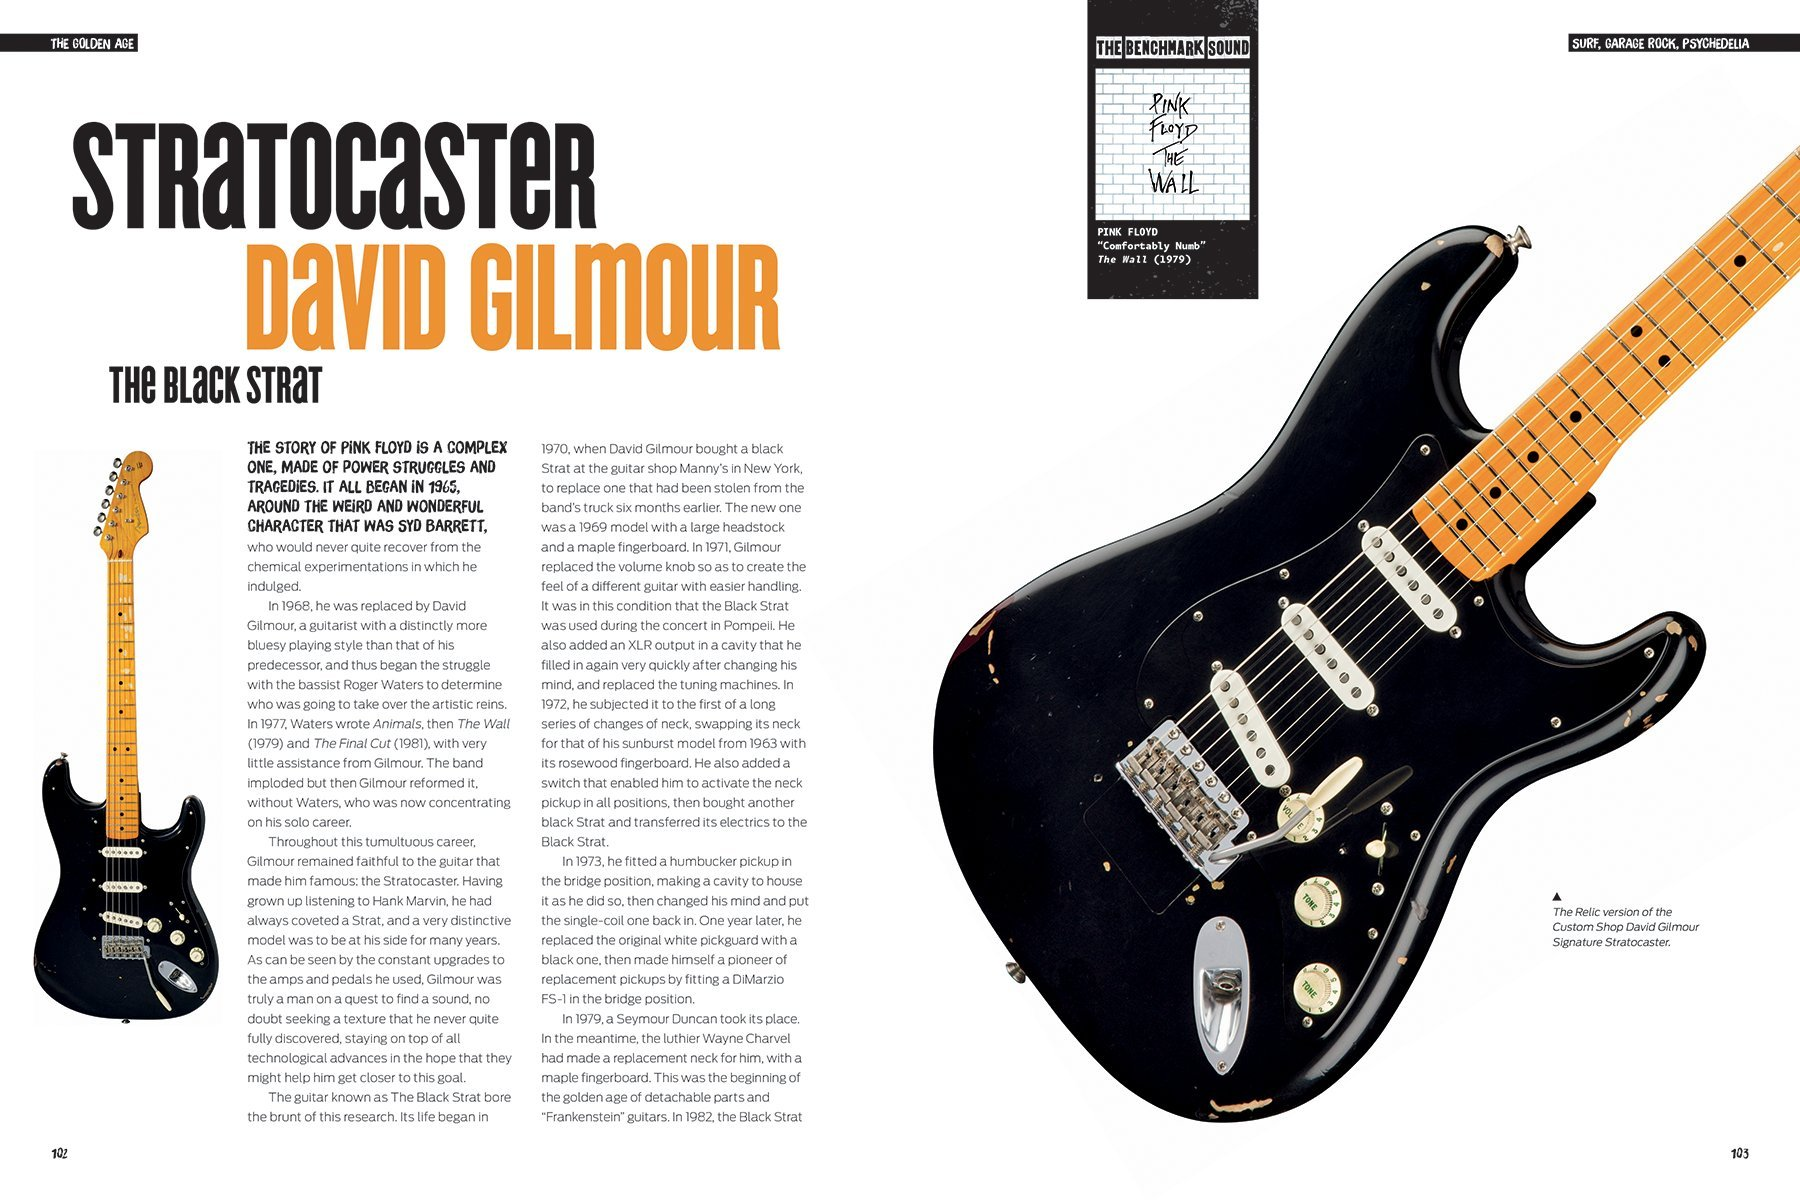 Guitars and Heroes: Mythic Guitars and Legendary Musicians ...